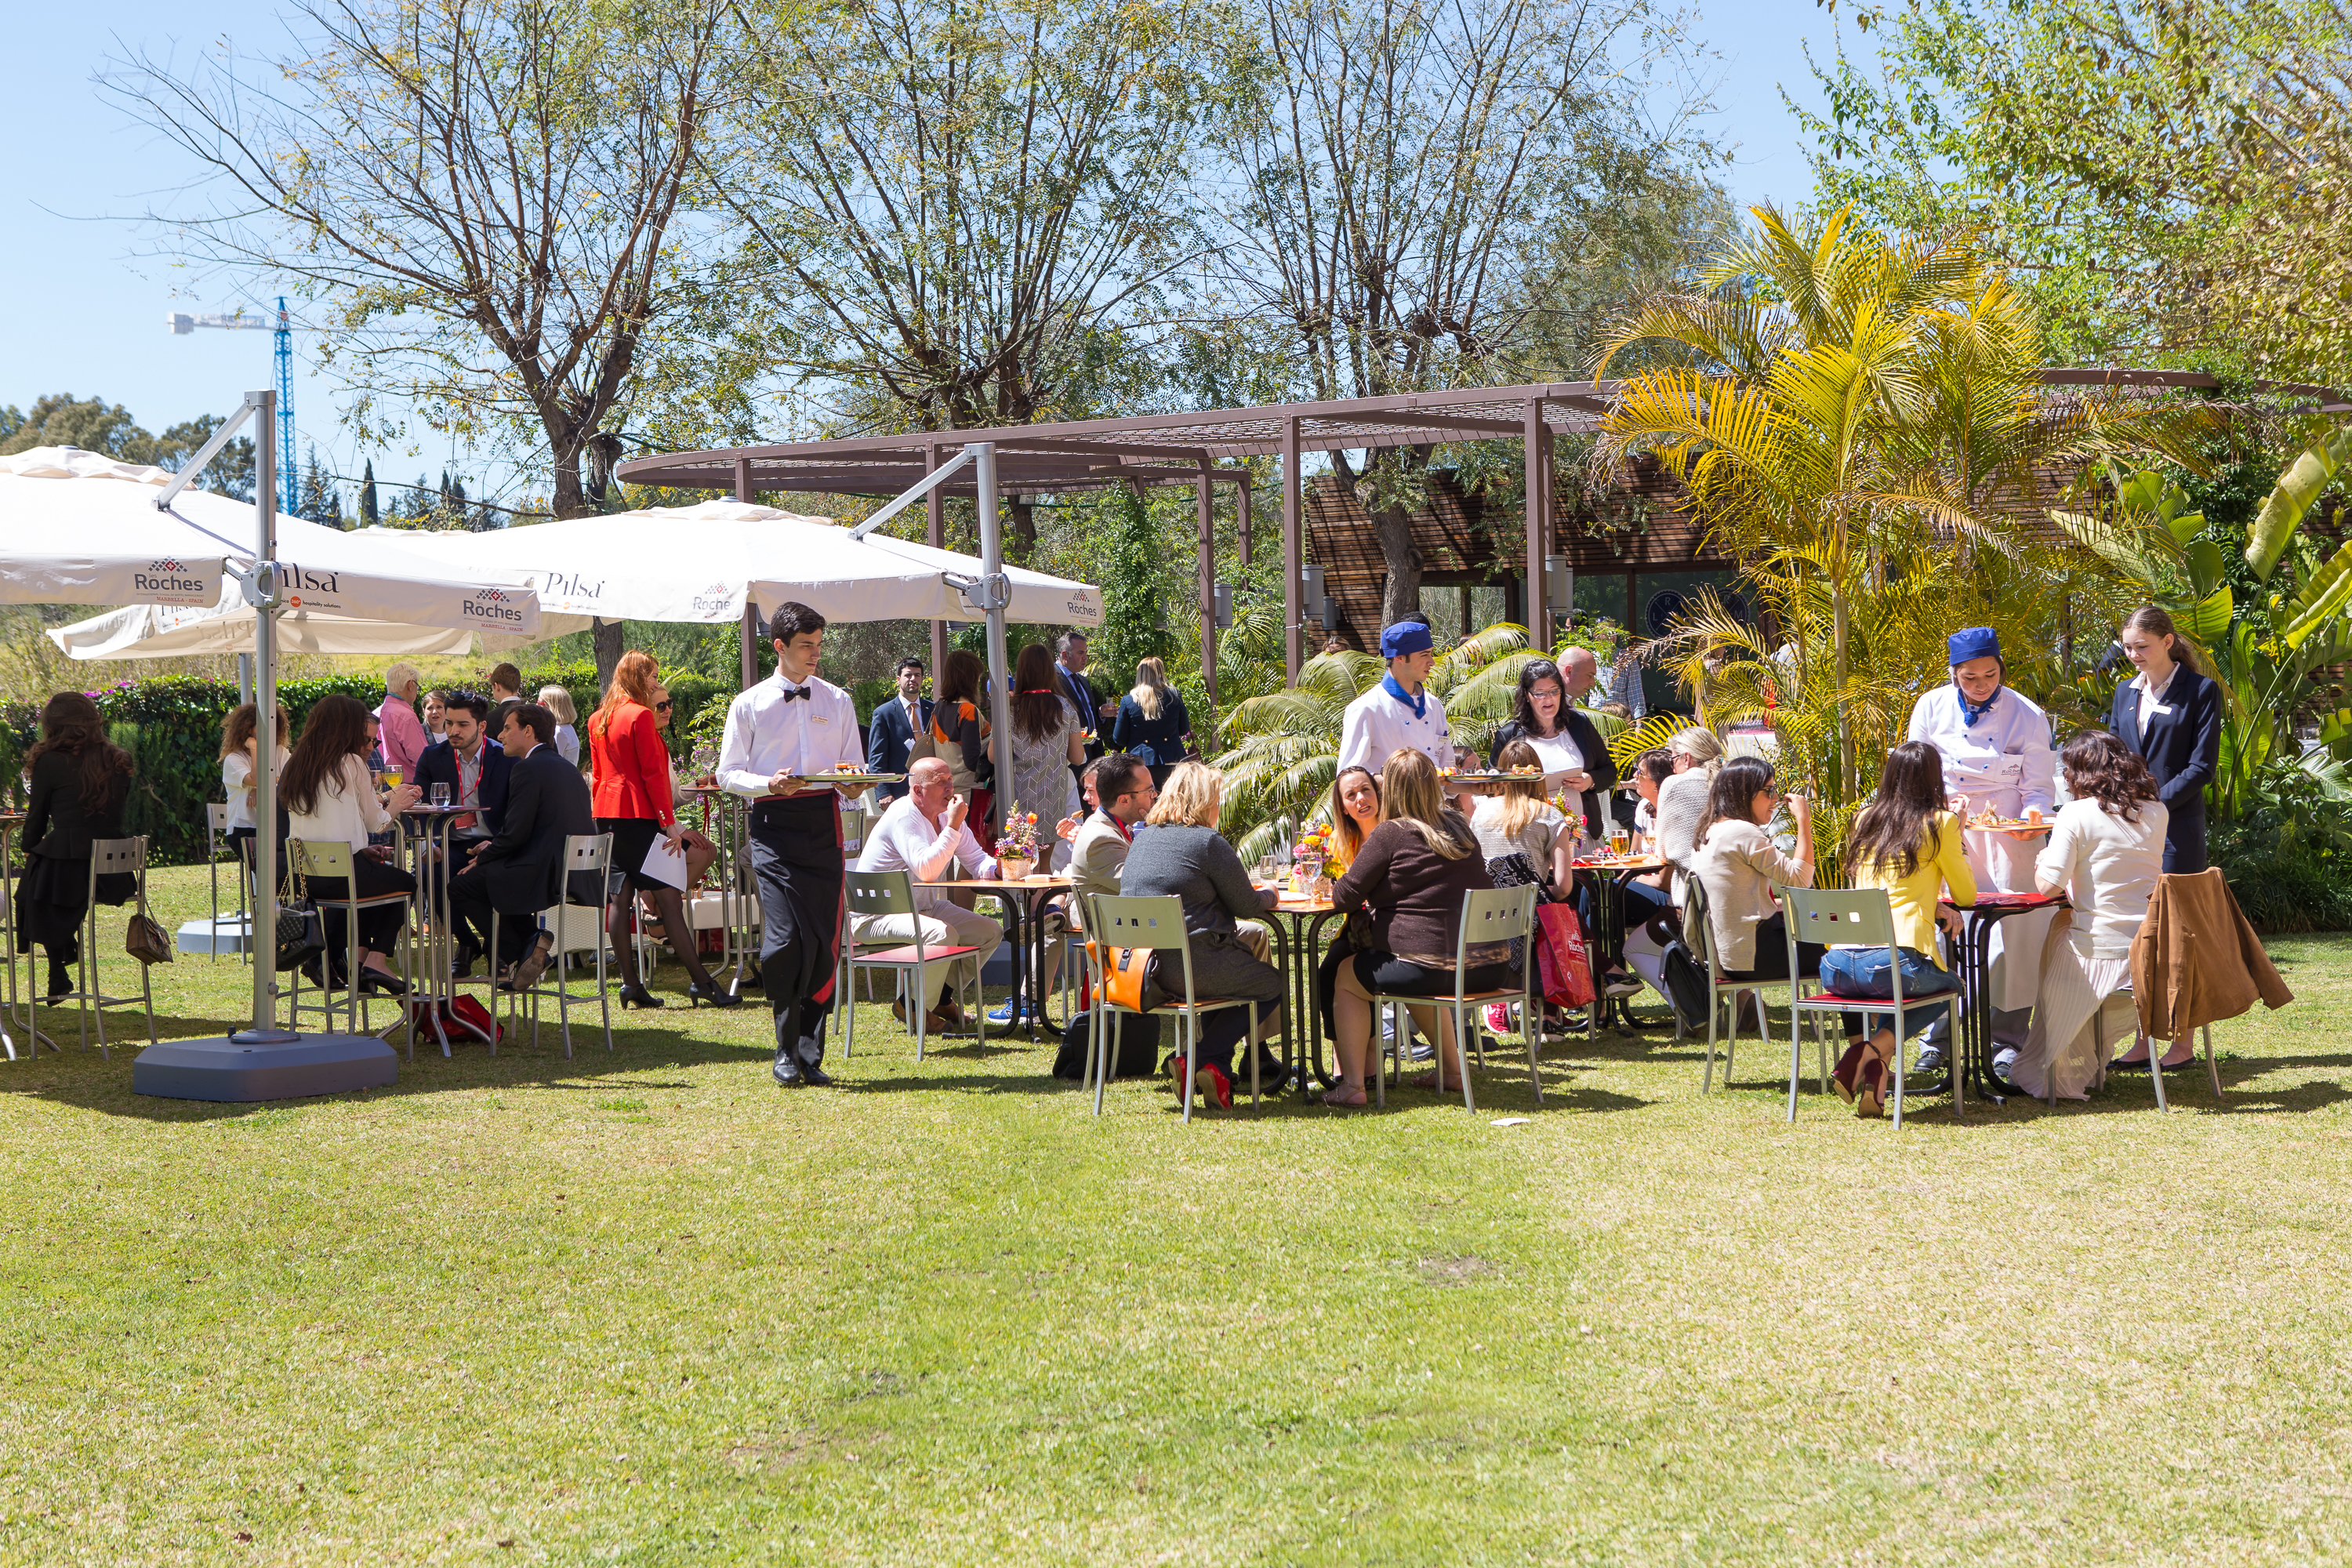 Les-Roches-Marbella-Open-Day-April-2016-5